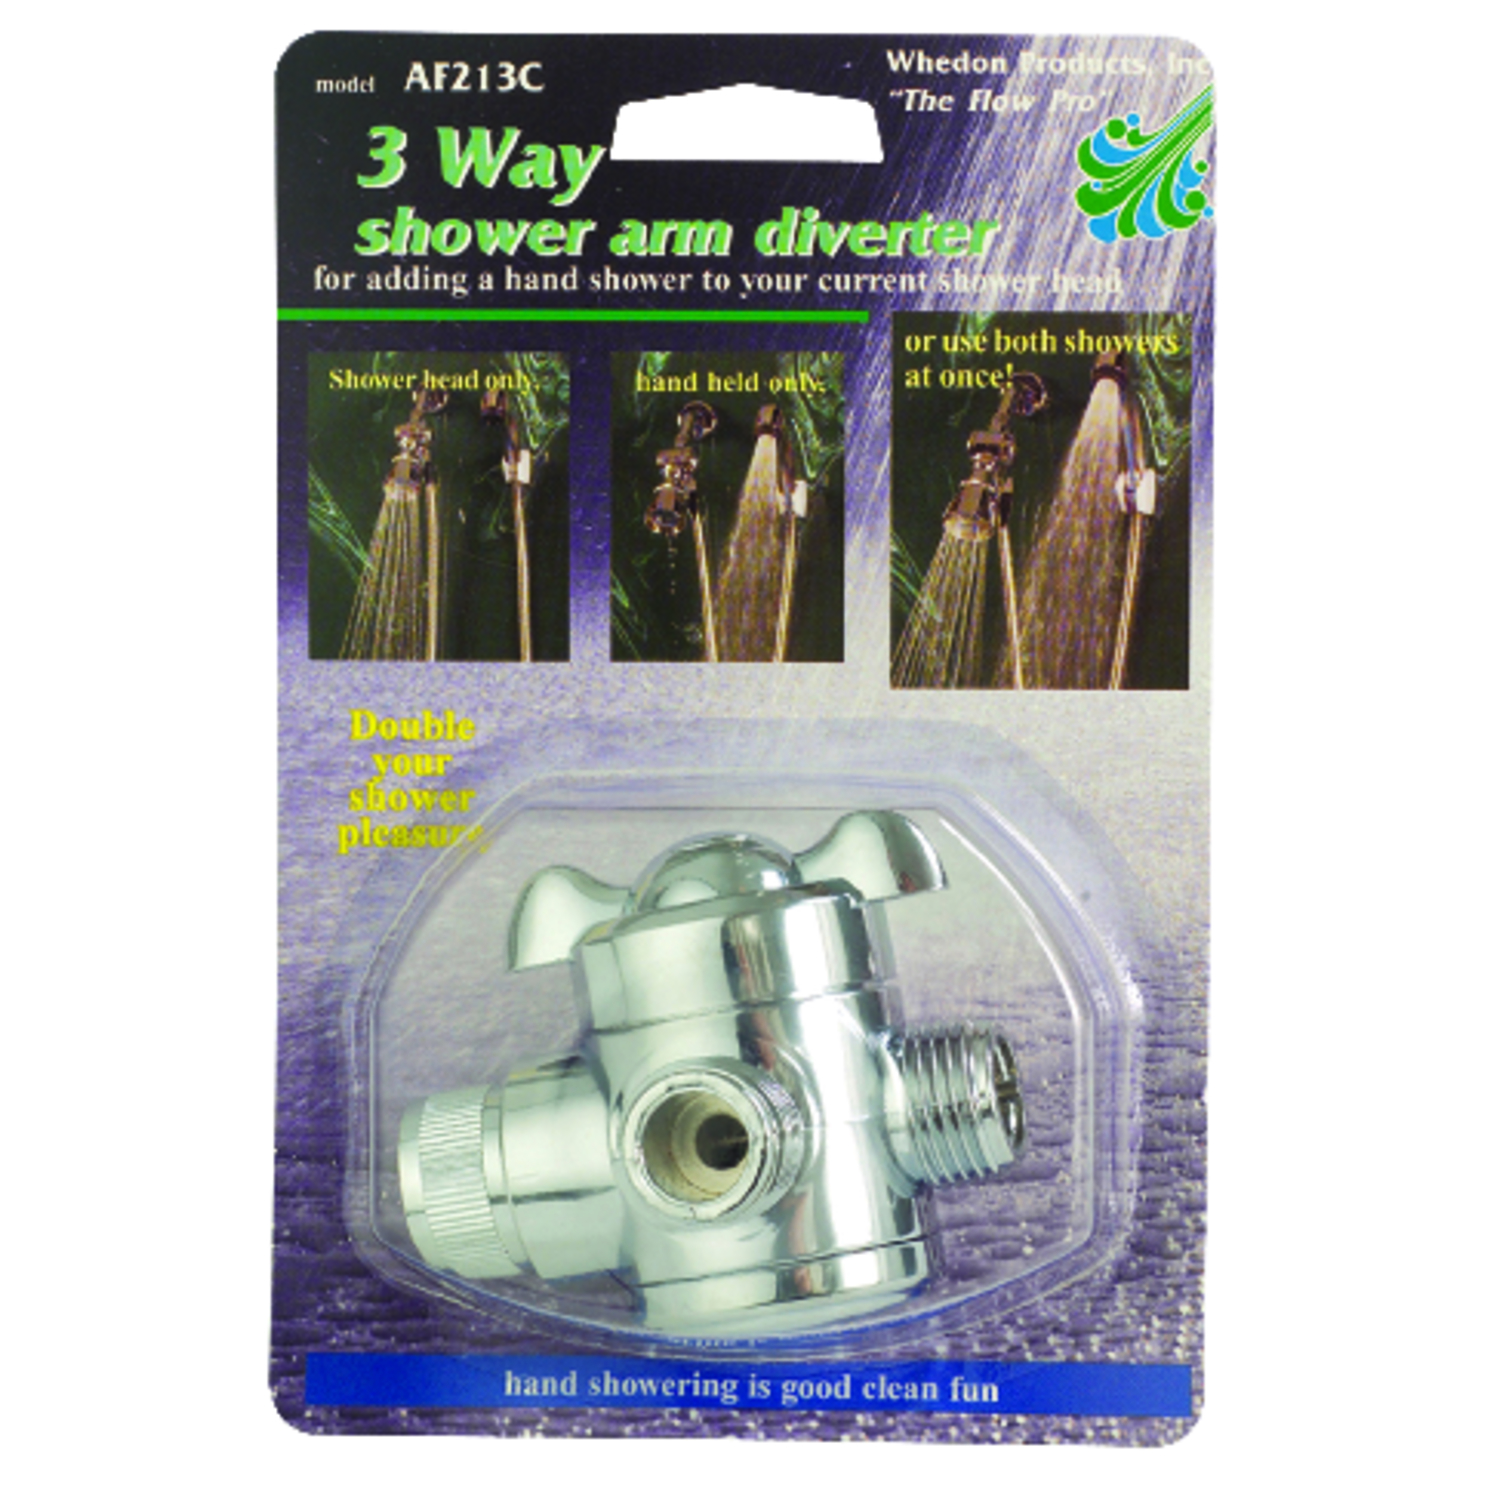 Whedon Chrome Abs Showerhead Diverter Valve Ace Hardware